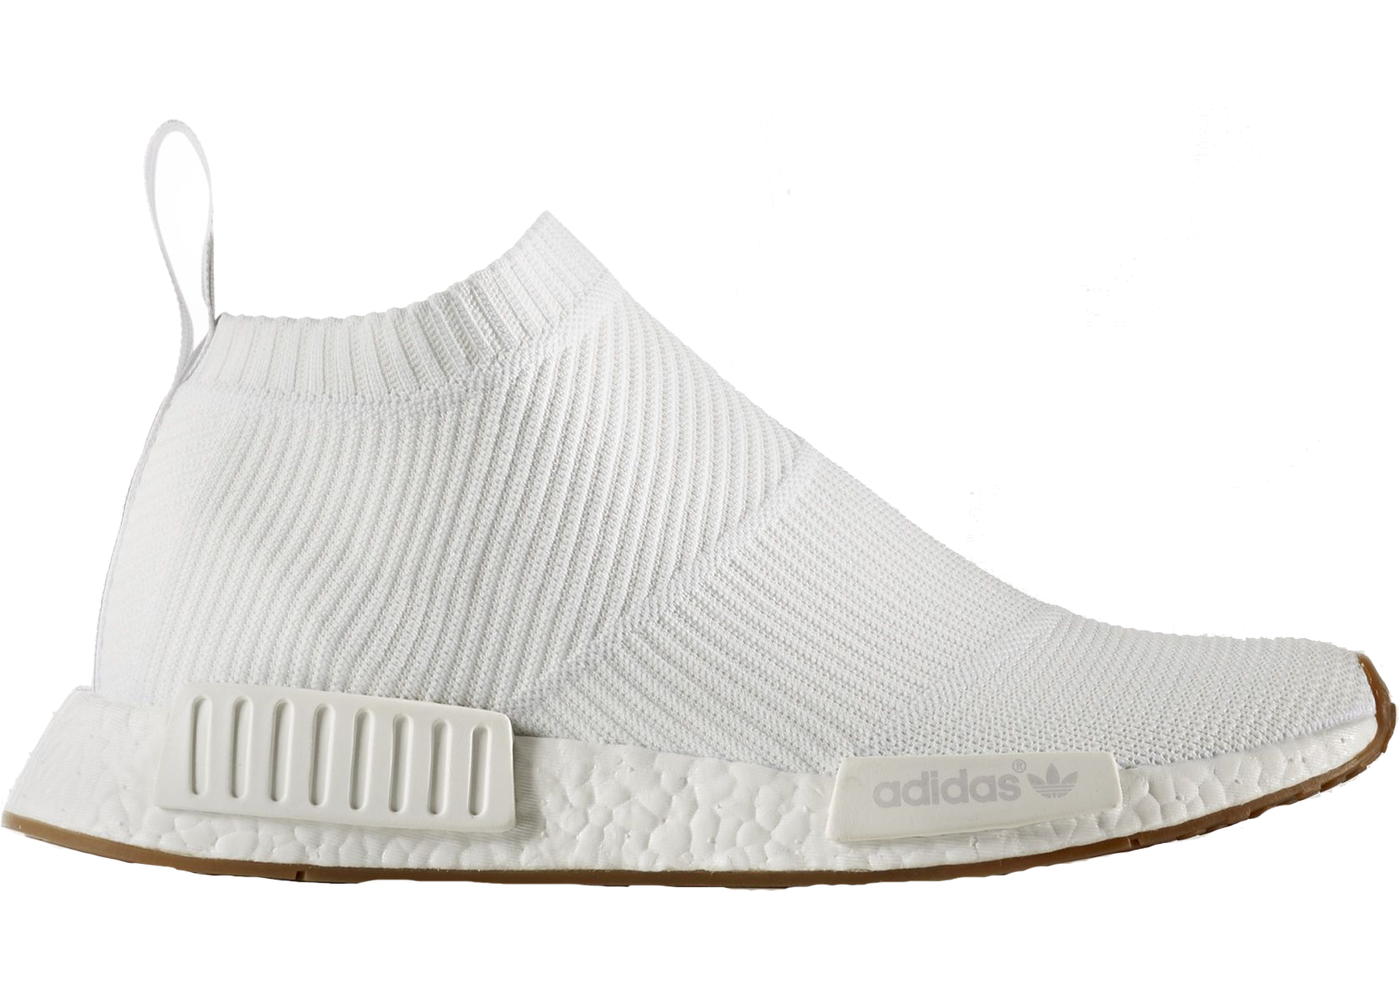 on sale adidas NMD Primeknit City Sock Black for Fall 2016 samrya